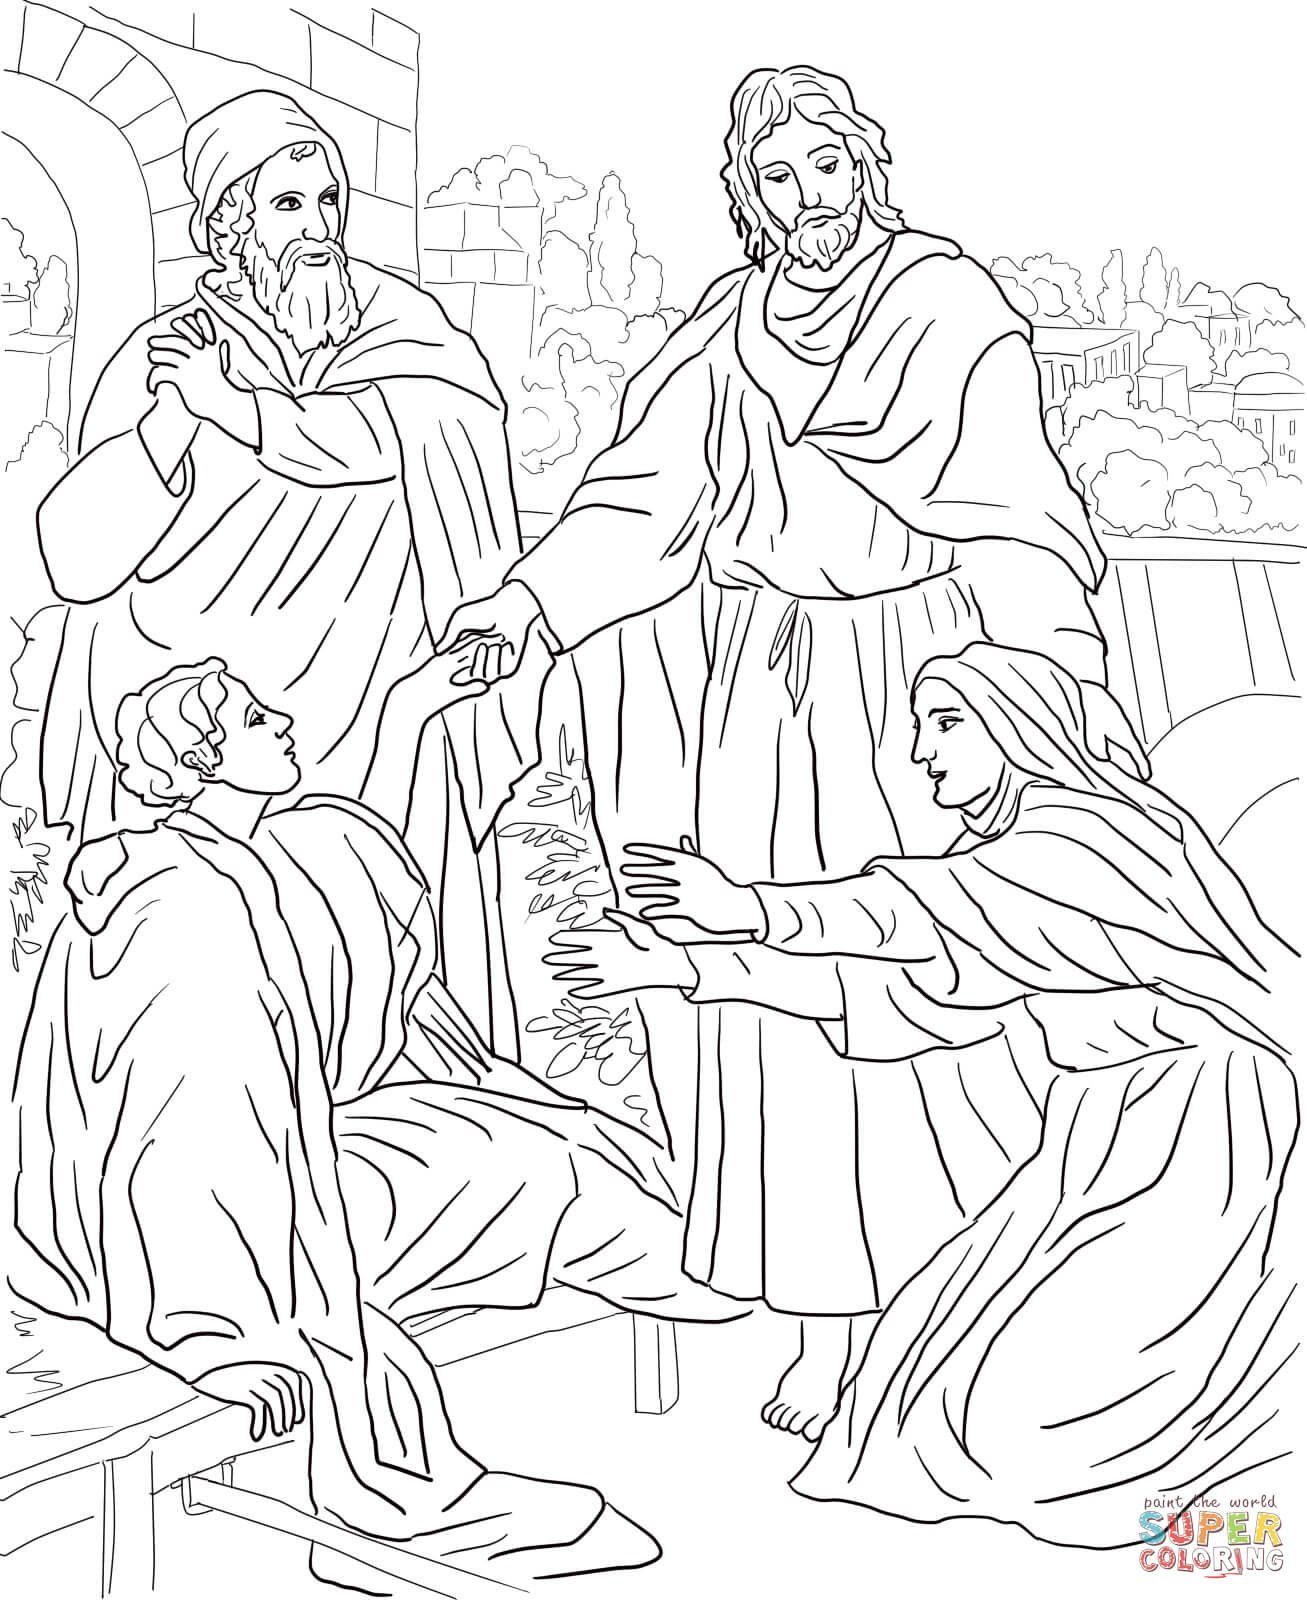 jesus-raises-widows-son-coloring-page